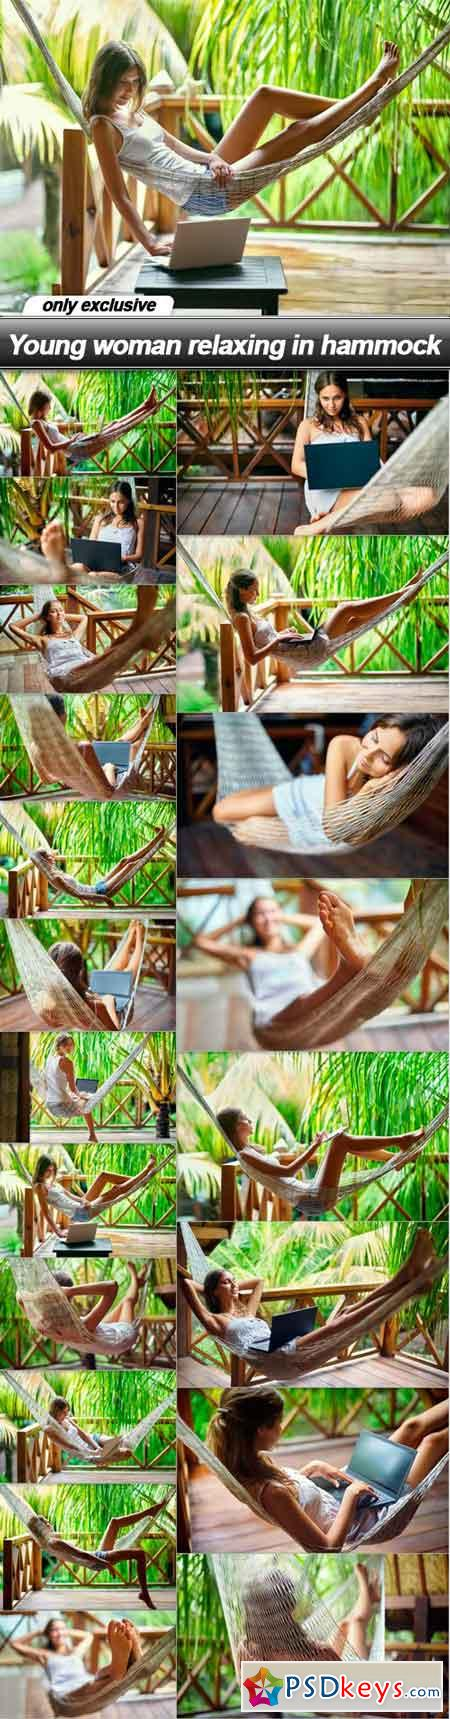 Young woman relaxing in hammock - 20 UHQ JPEG